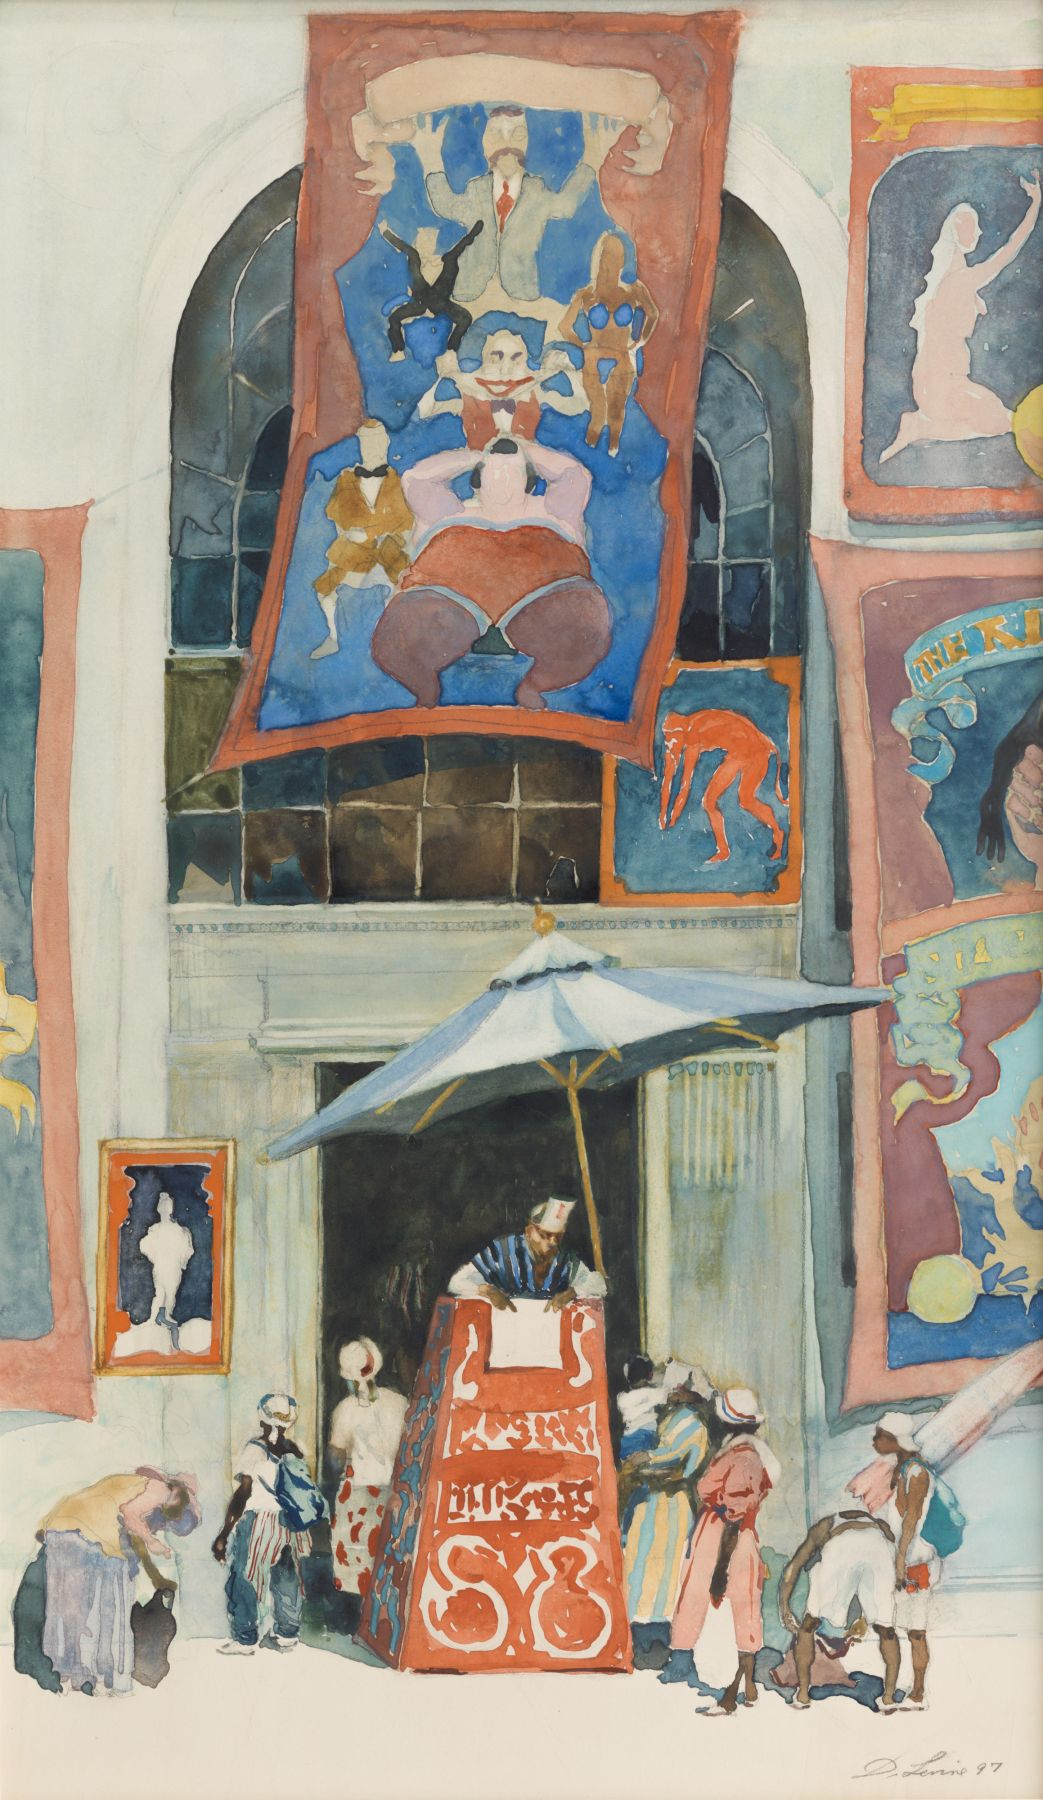 david levine, House of Freaks, 1997 watercolor on paper 18 1/2 x 20 inches, Private collection, Greenwich, CT